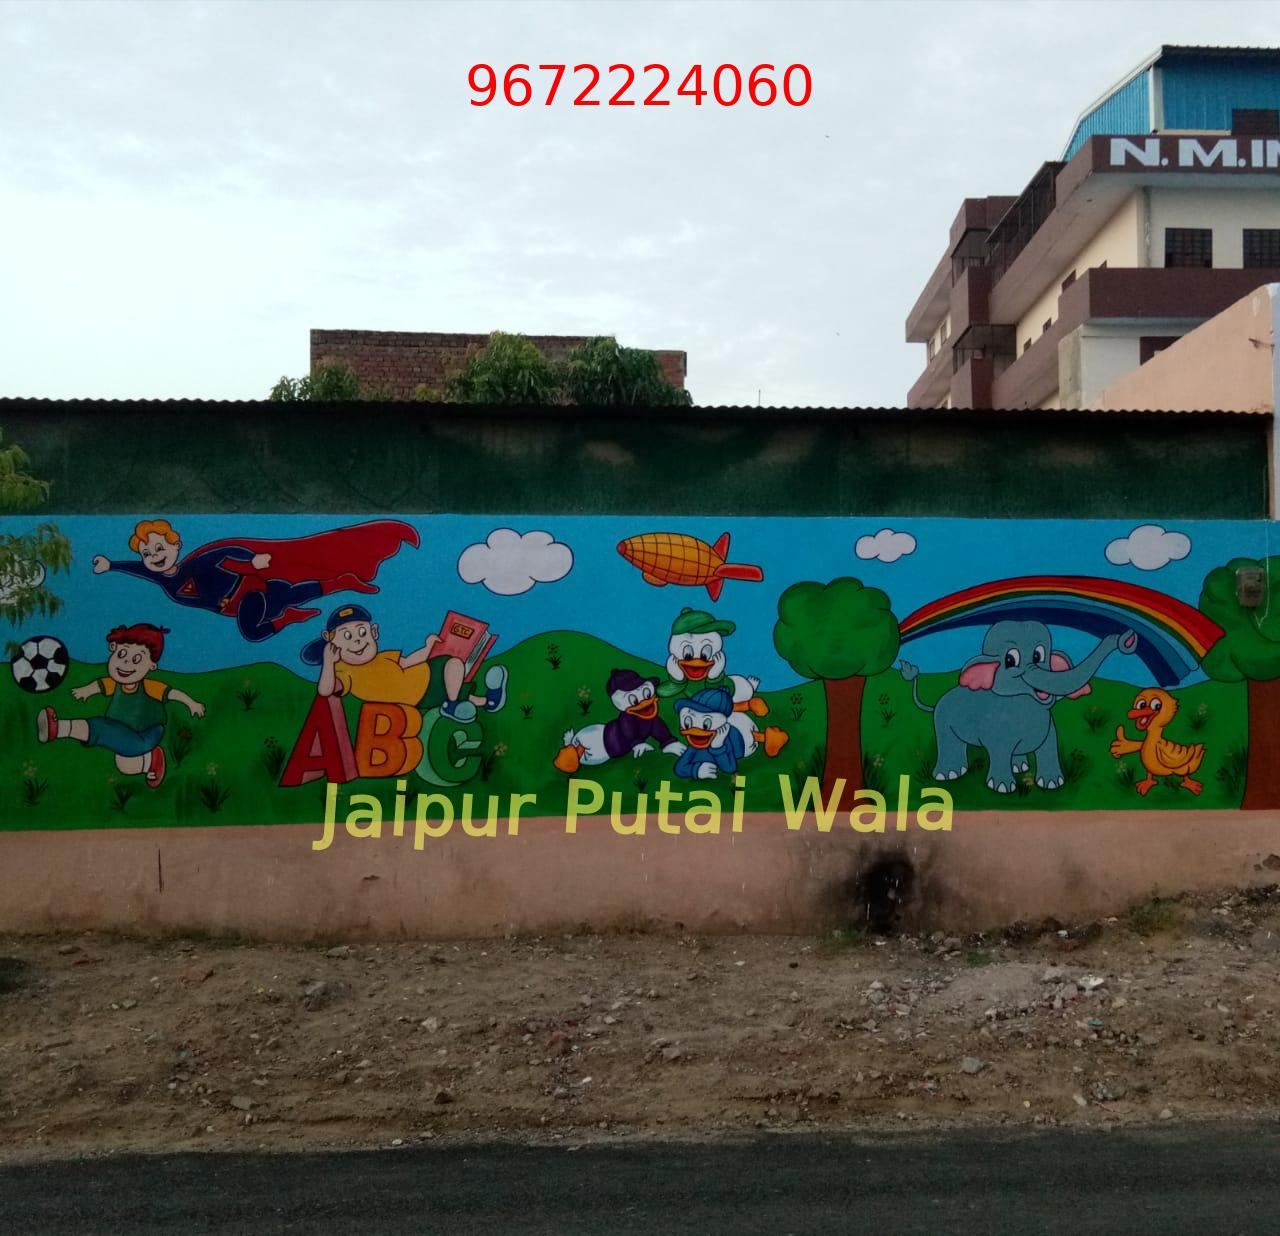 micky-mouse-cartoon-wall-paint-rajasthan-06.jpg